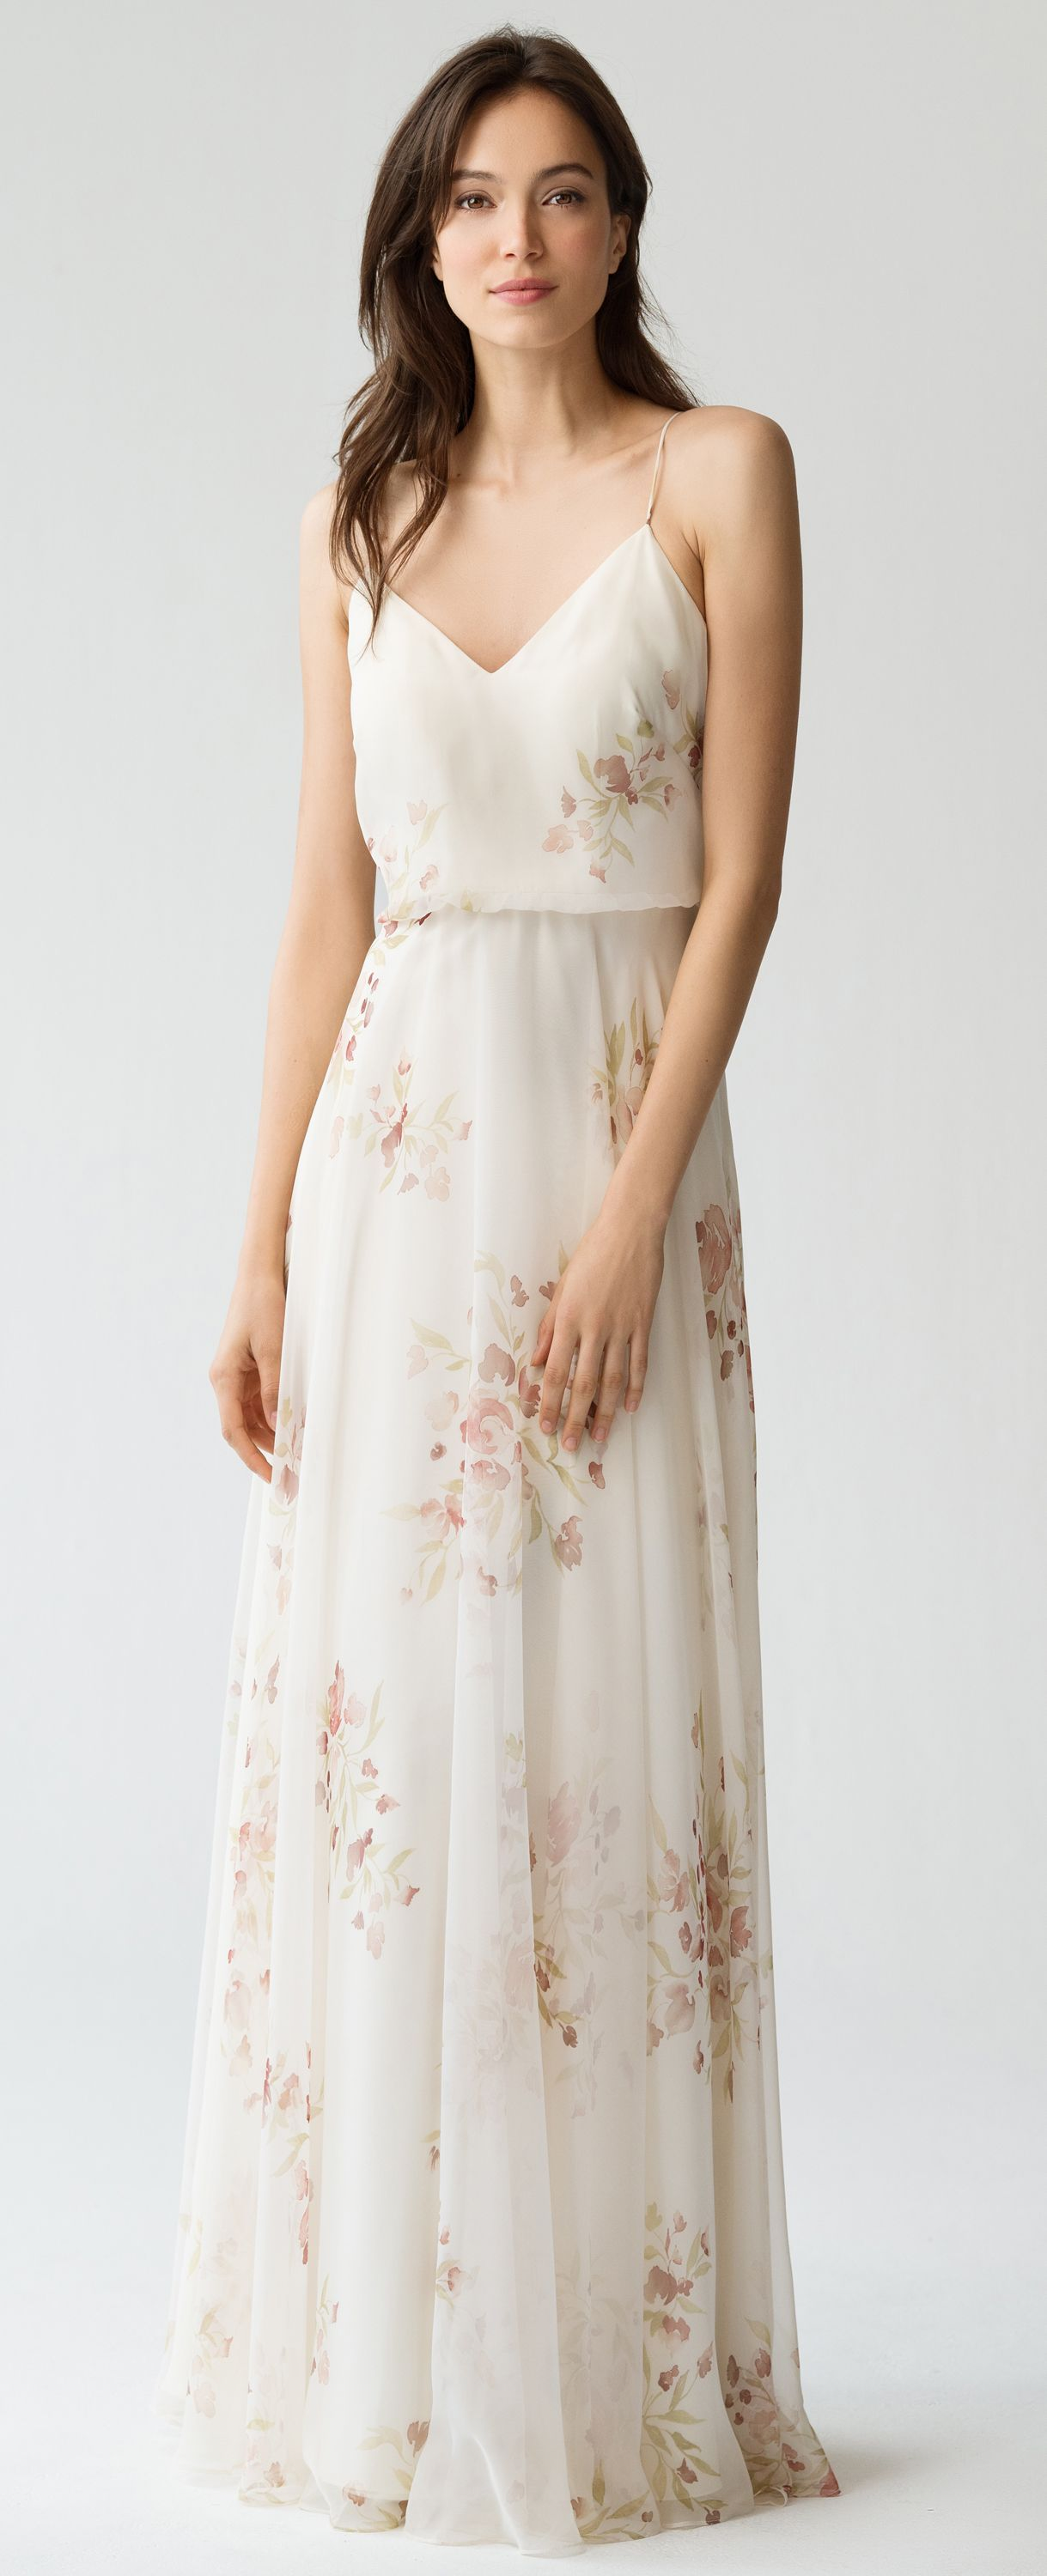 7aa77a109 Inesse Bridesmaid Dress in Ivory Soft Rose Eden Bouquet Floral Print by Jenny  Yoo #springwedding #summerwedding #pastels